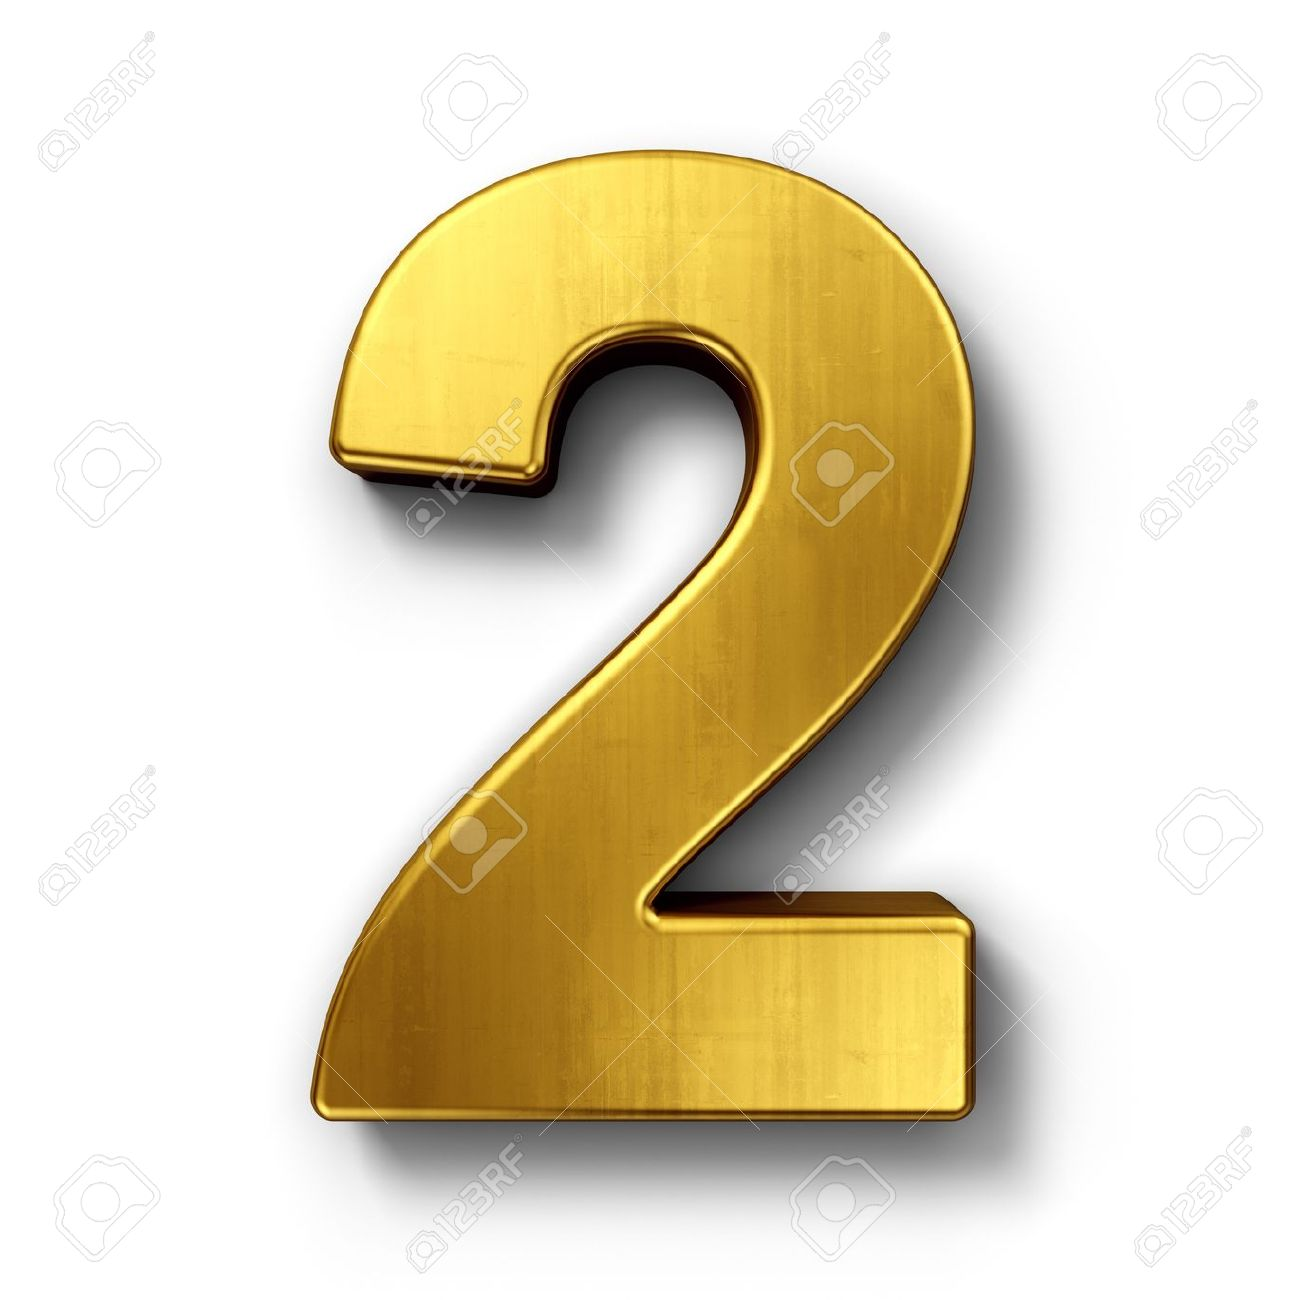 3d rendering of the number 2 in gold metal on a white isolated background.  Stock